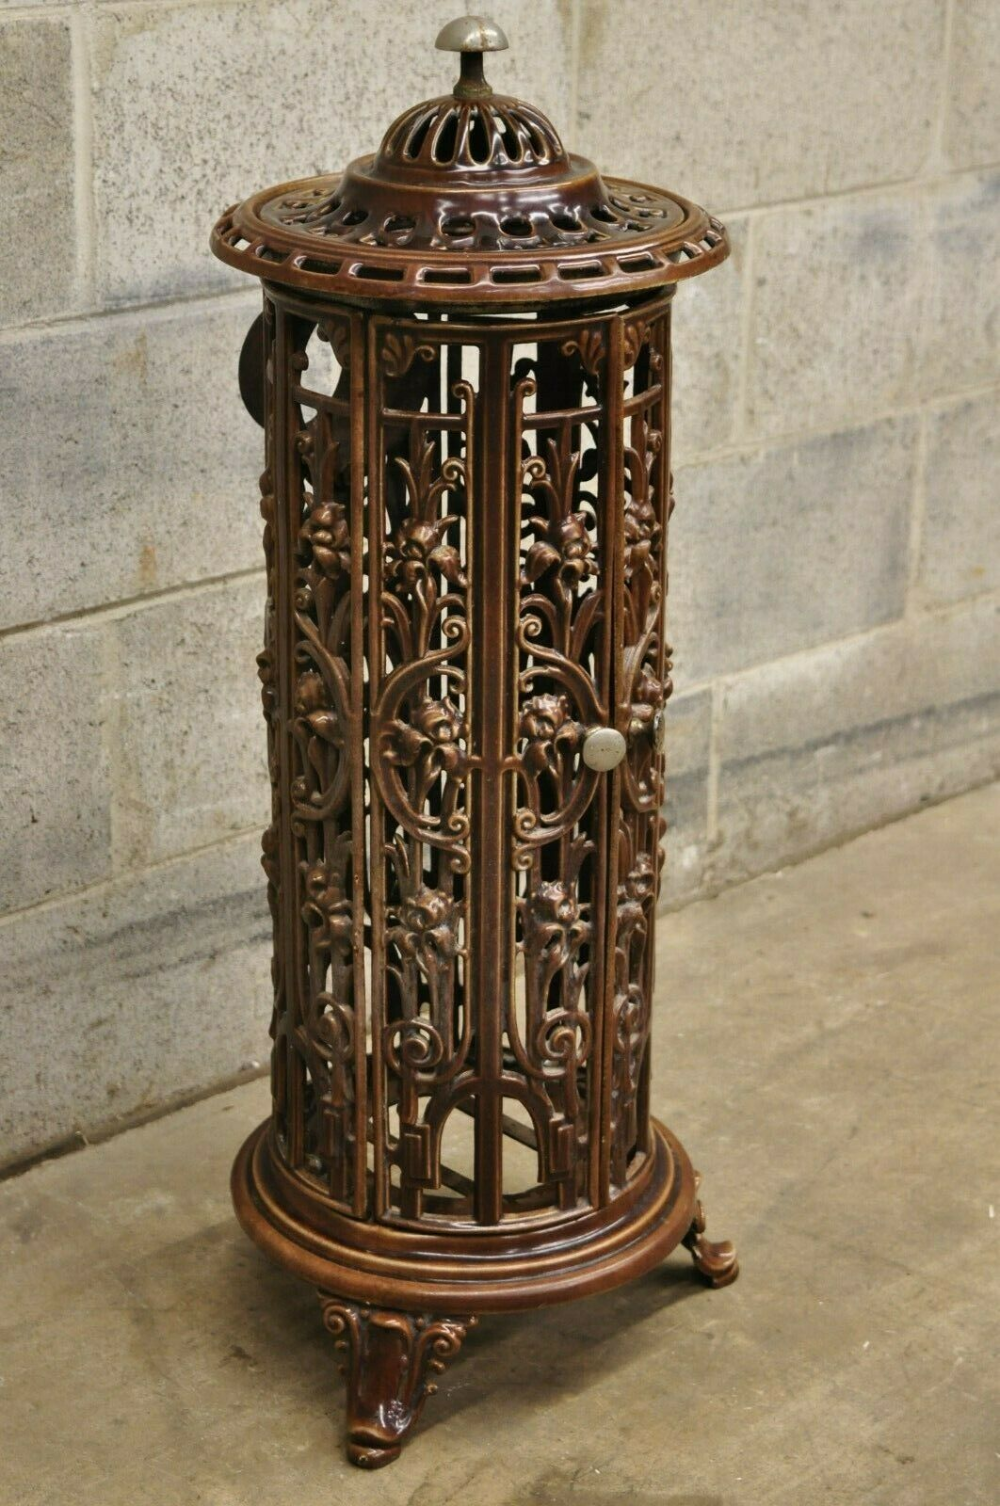 Antique French Victorian Round Cast Iron Wood Burning Brown Enamel Stove Heater Ebay In 2020 French Antiques Stove Heater Stove